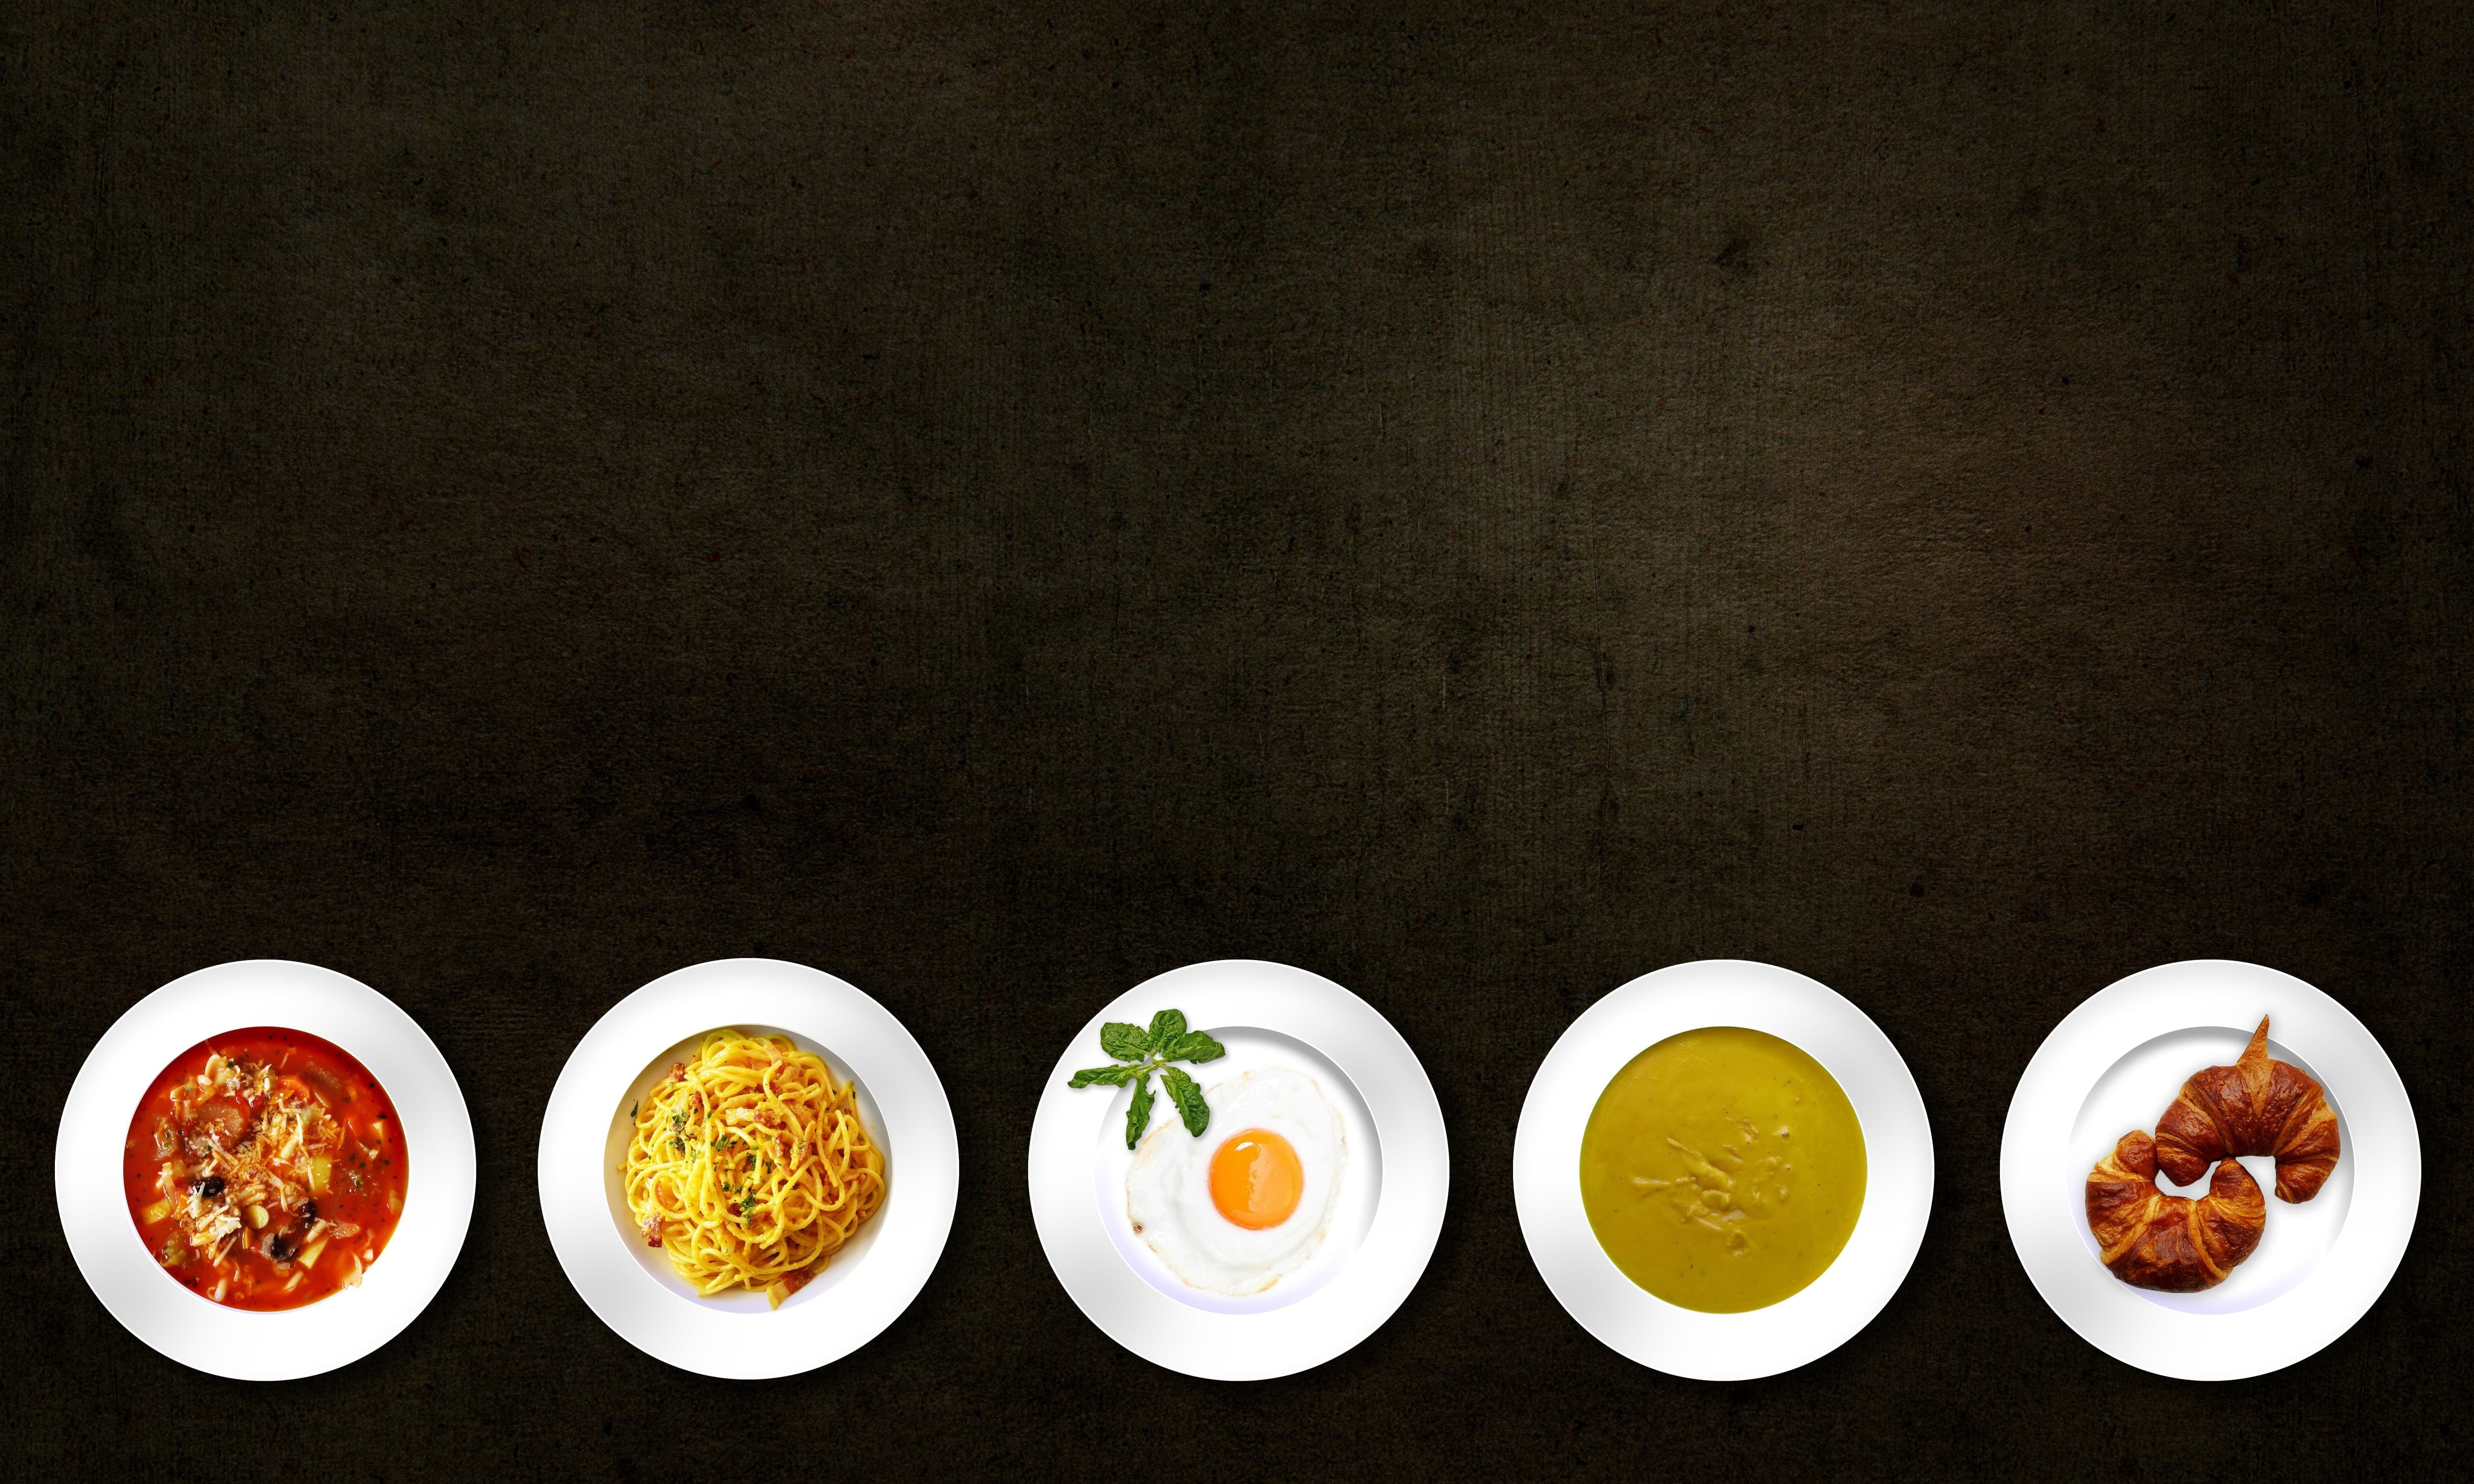 five-white-plates-with-different-kinds-of-dishes-54455 (1)